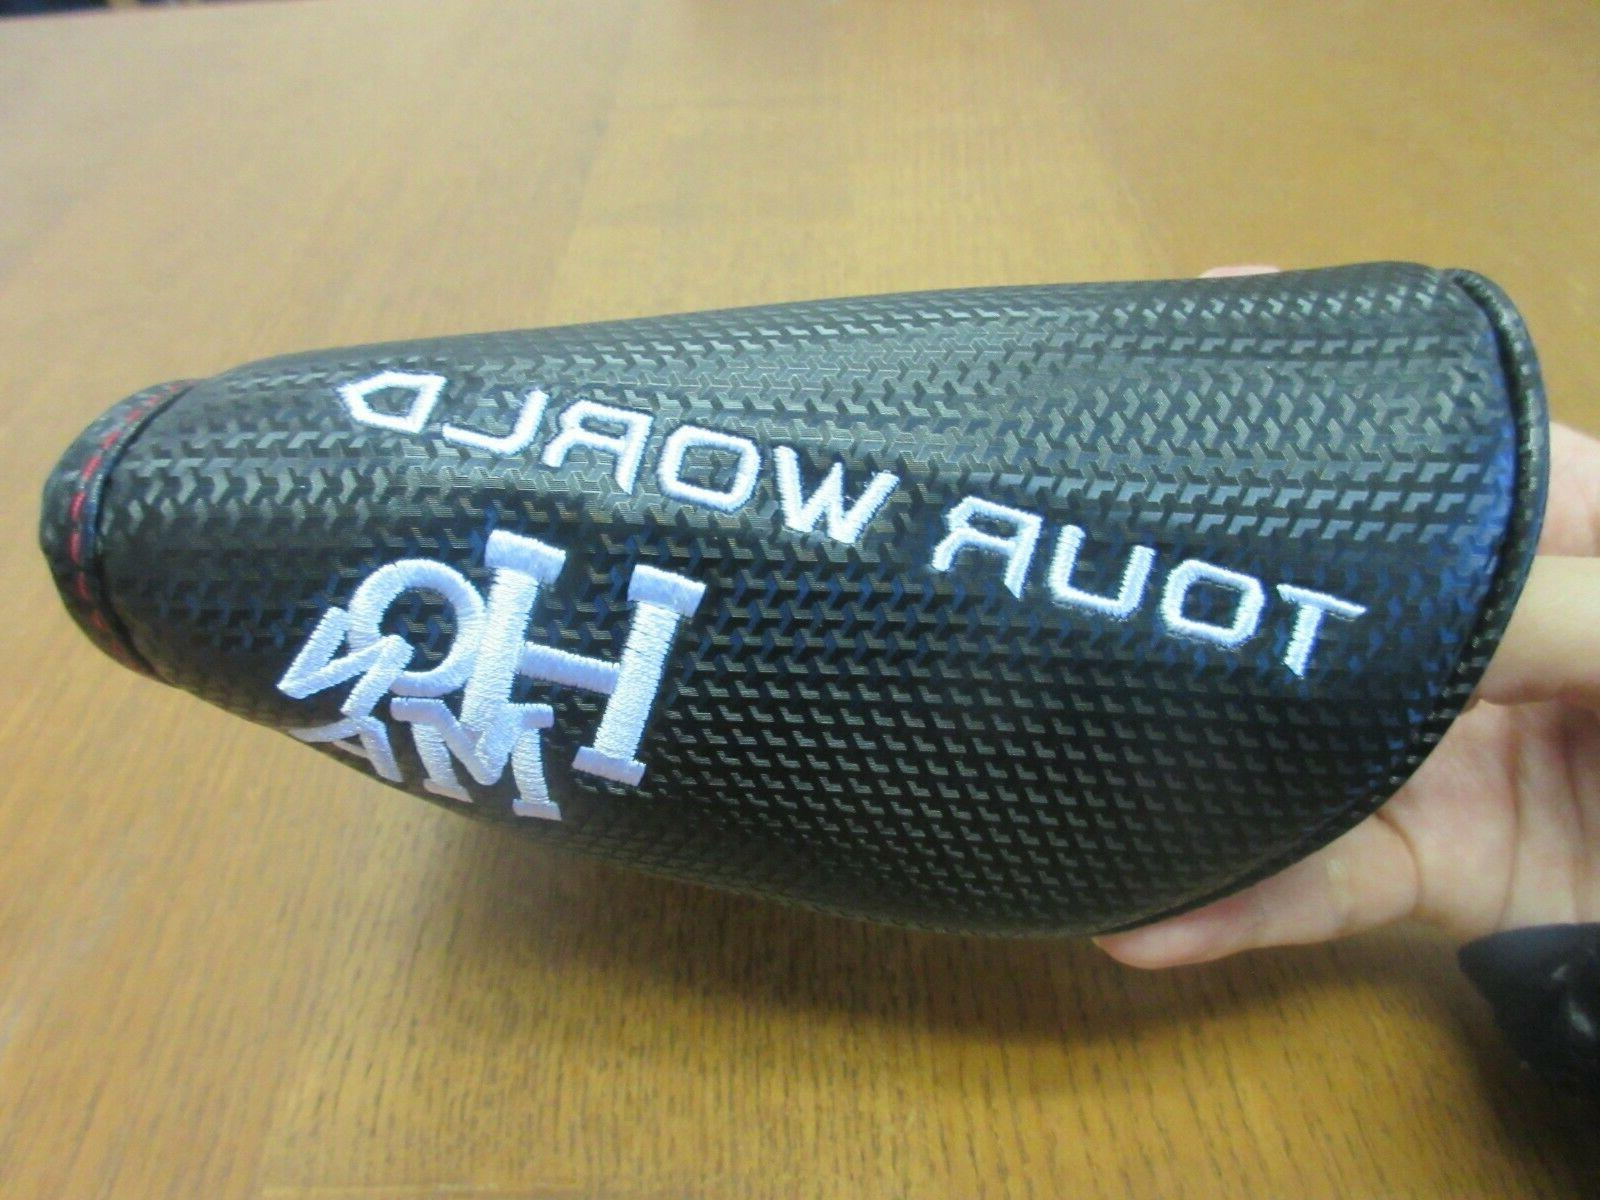 NEW!! TOUR PUTTER PT 34 WITH HEAD COVER!